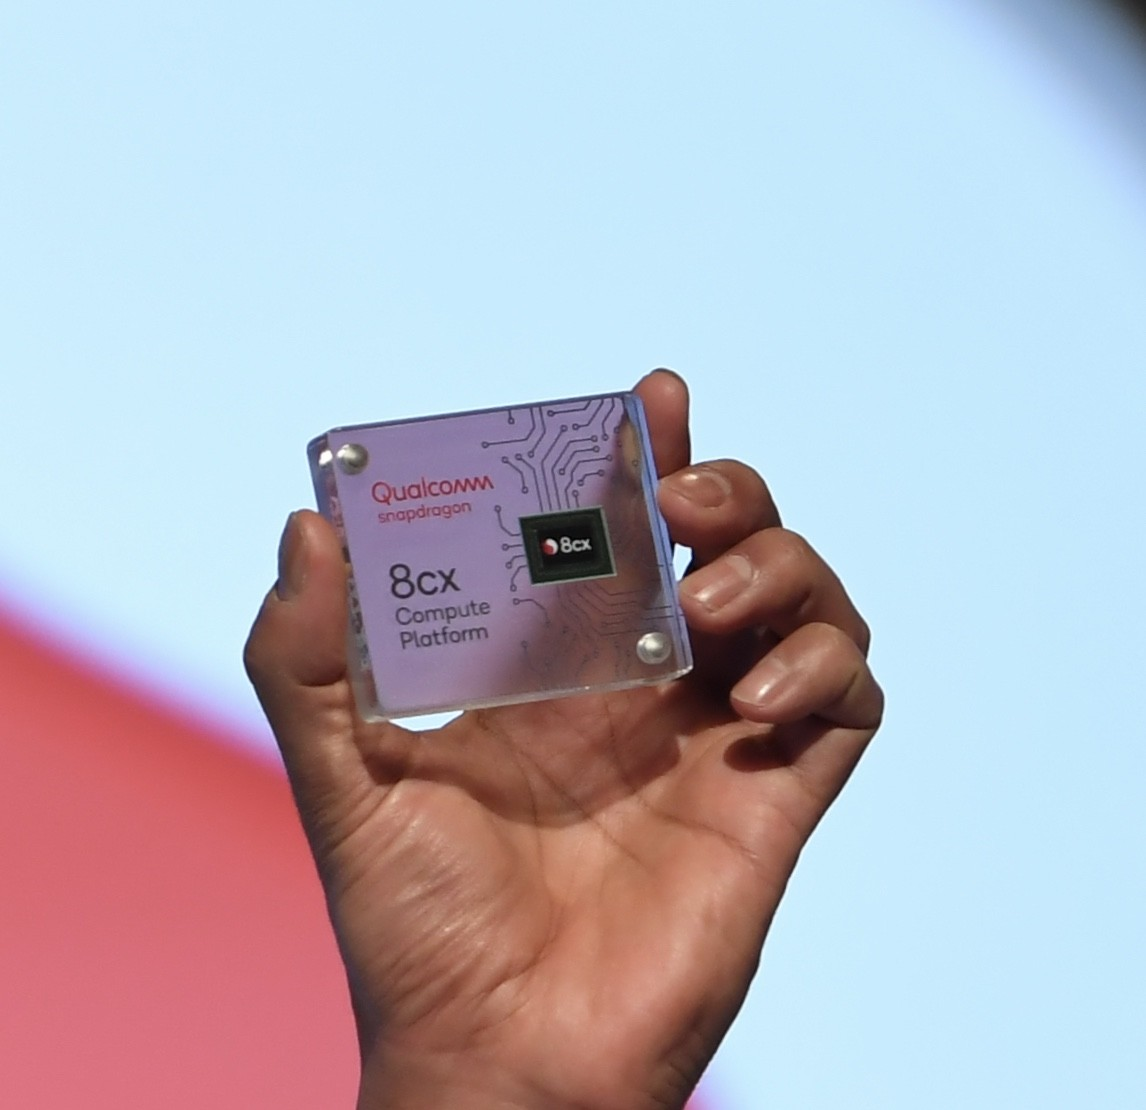 The Qualcomm Snapdragon 855 is the world's first